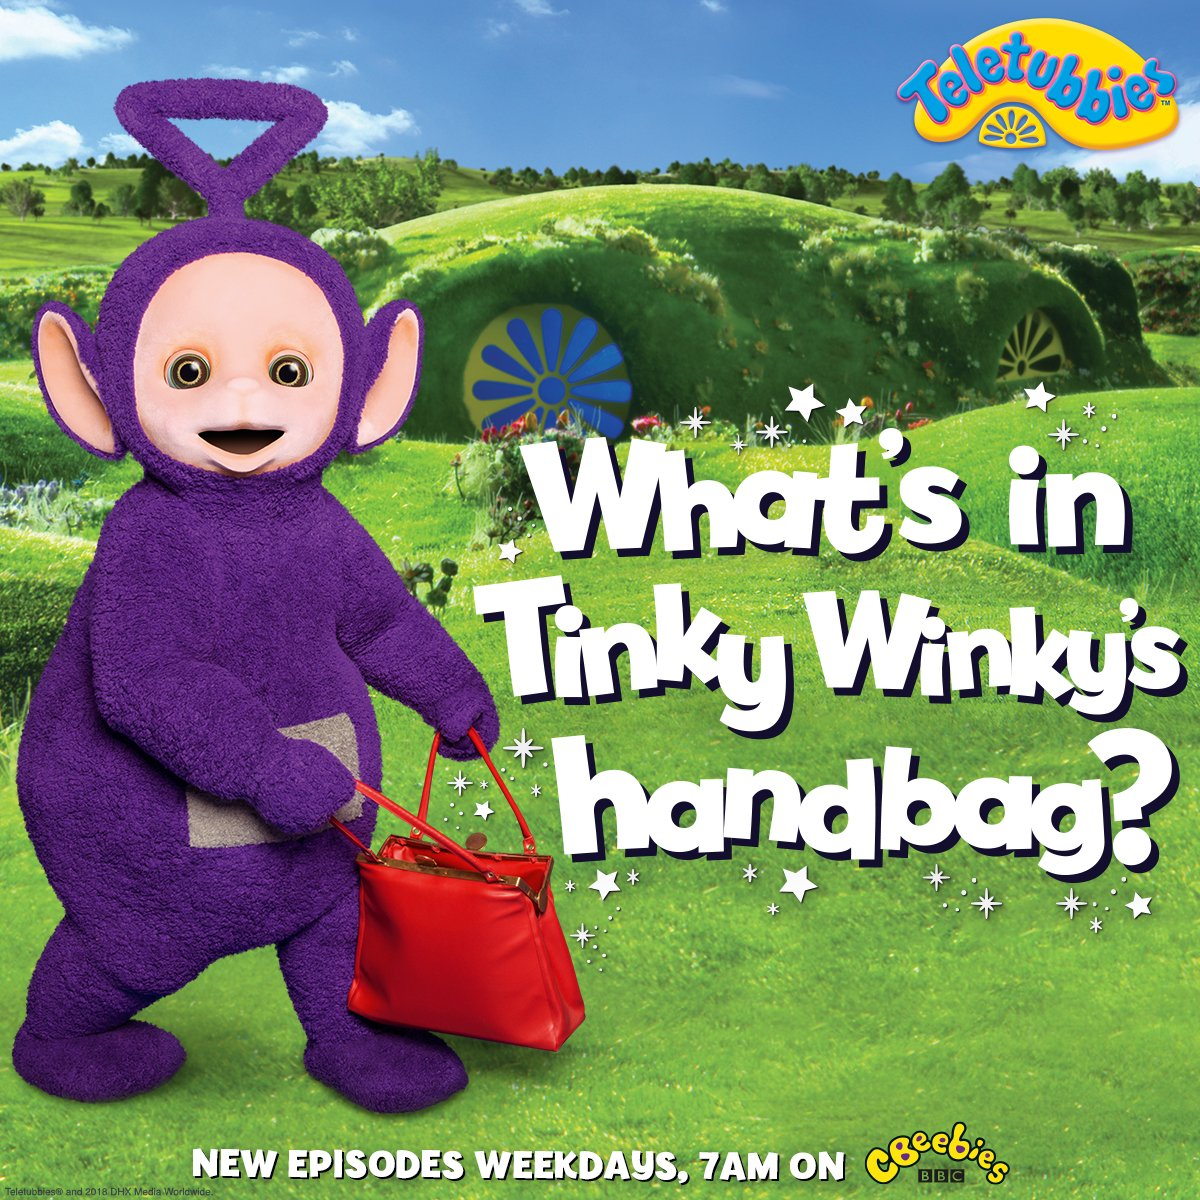 Teletubbies On Twitter What Could Be